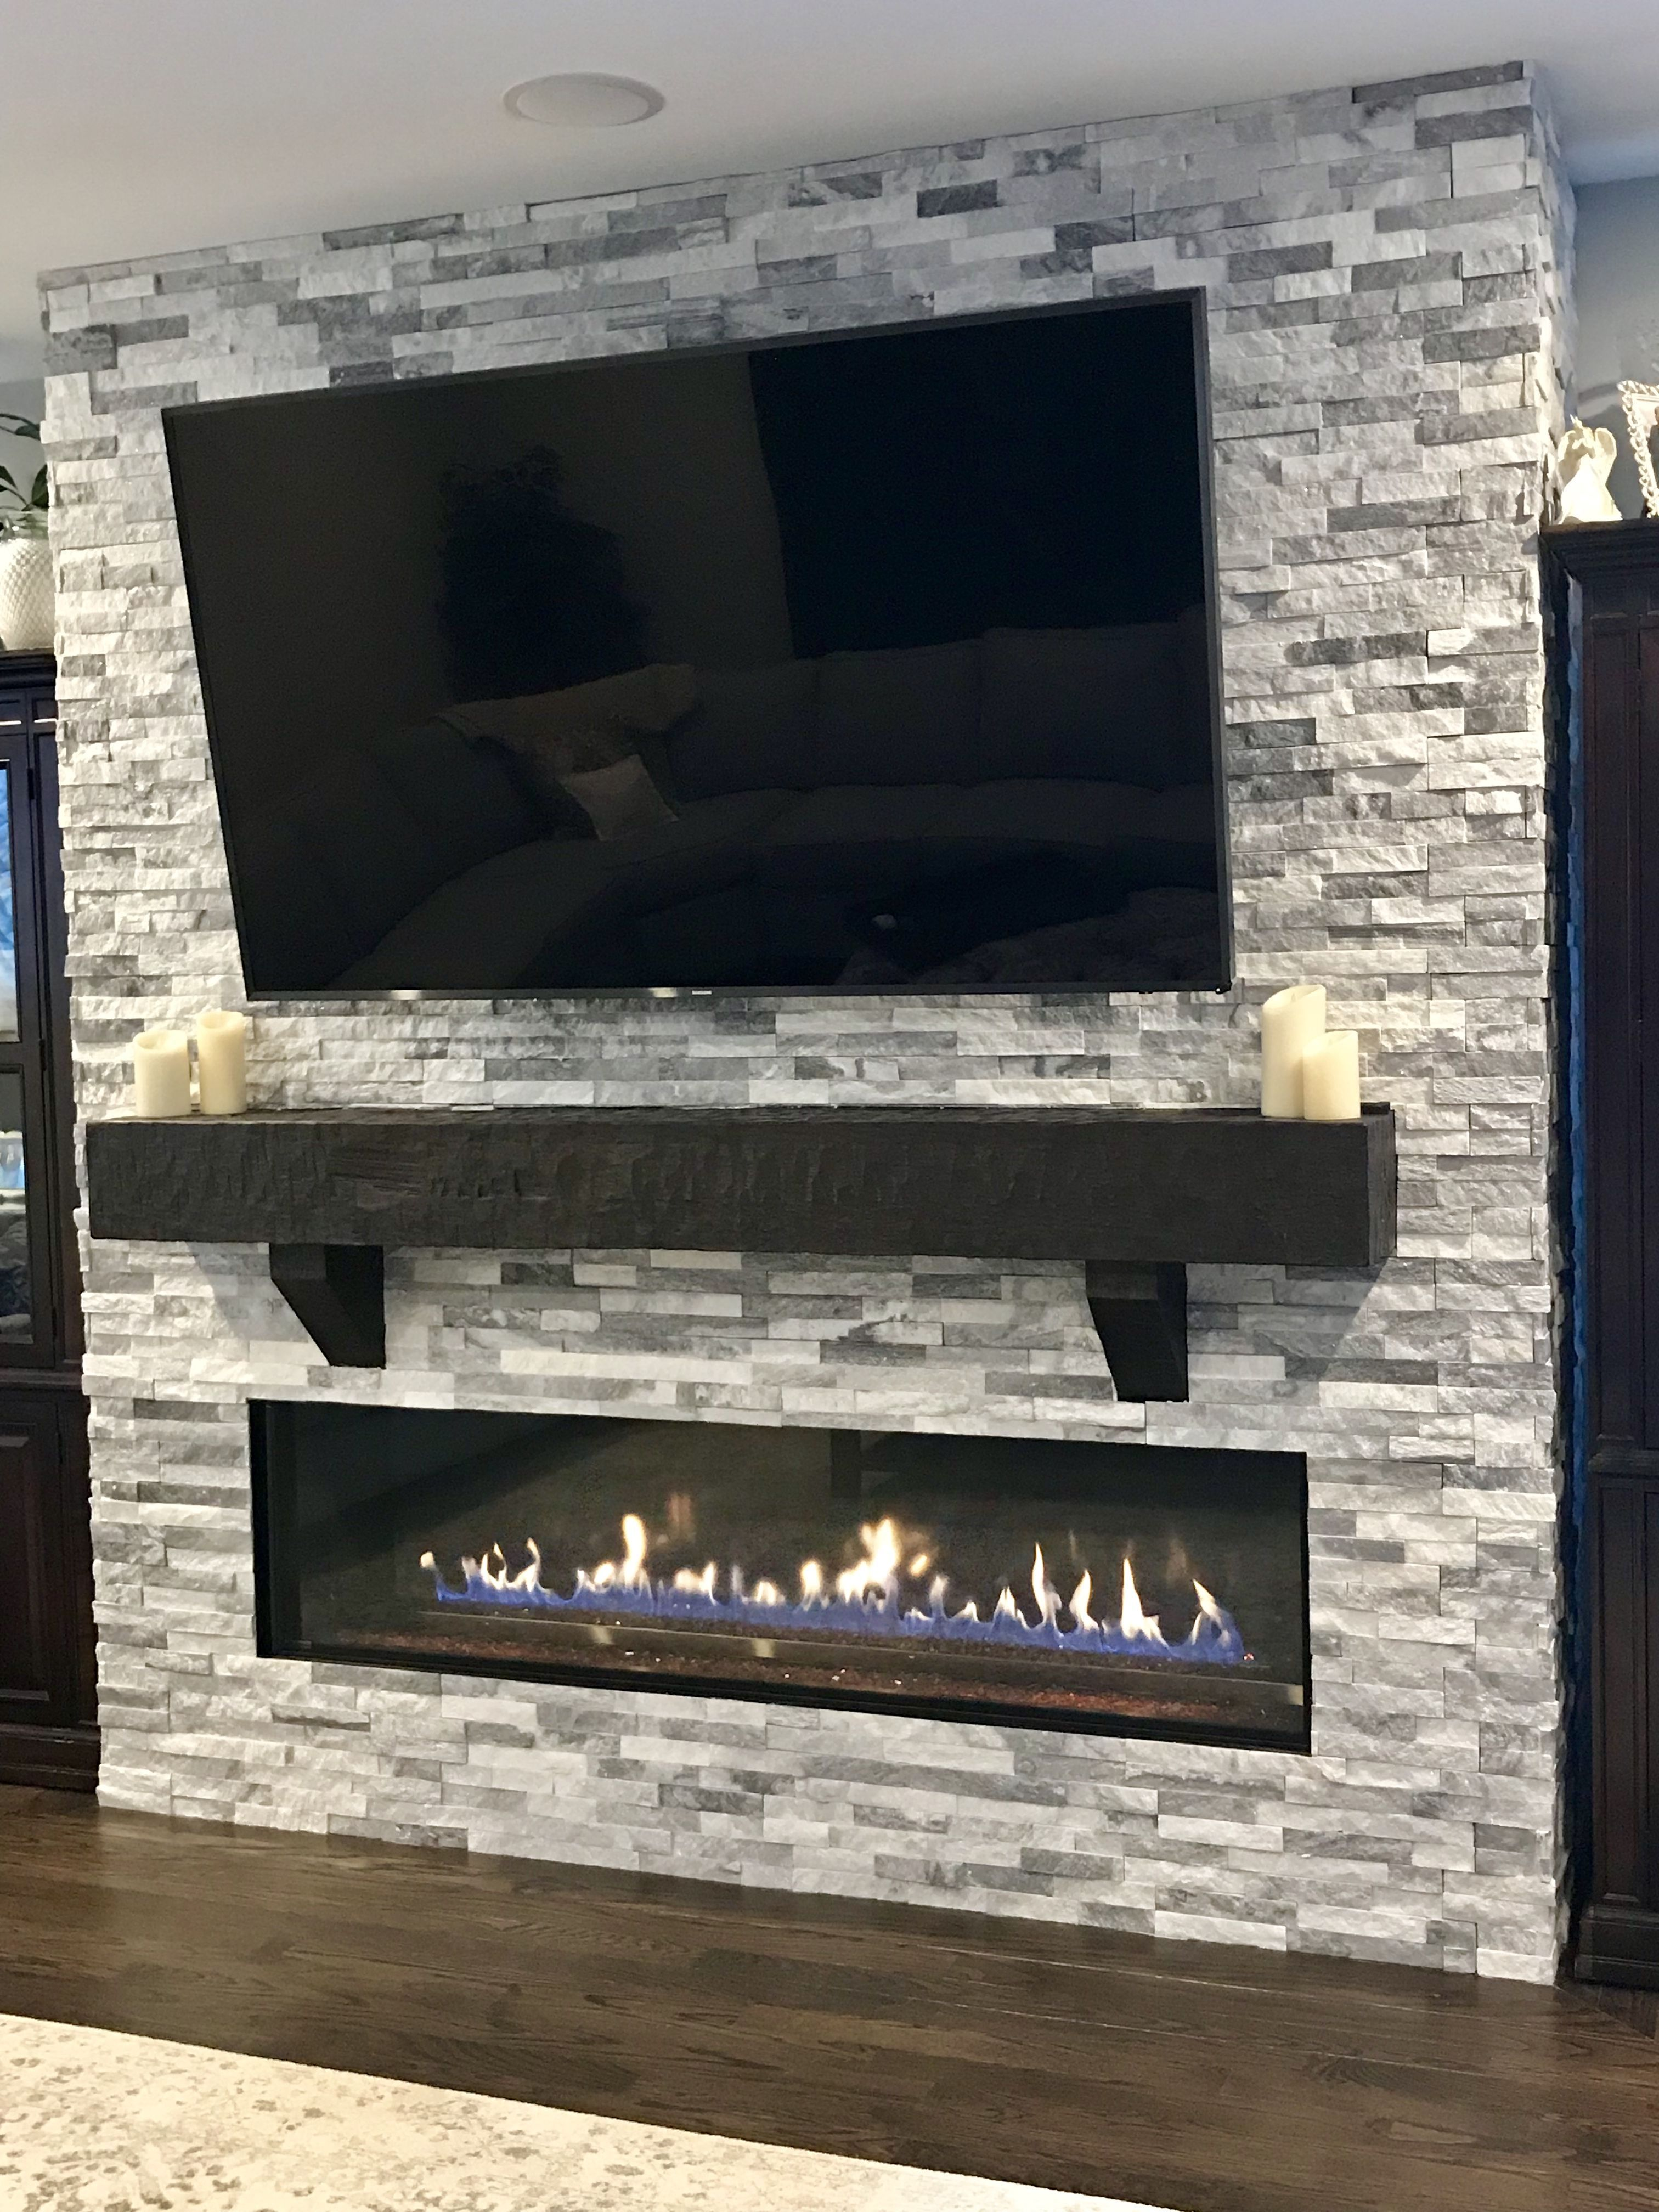 New Cost Free Gas Fireplace With Tv Above Suggestions There S Only One Thing Better Tha Gas Fireplace Ideas Living Rooms Linear Fireplace Wood Mantle Fireplace